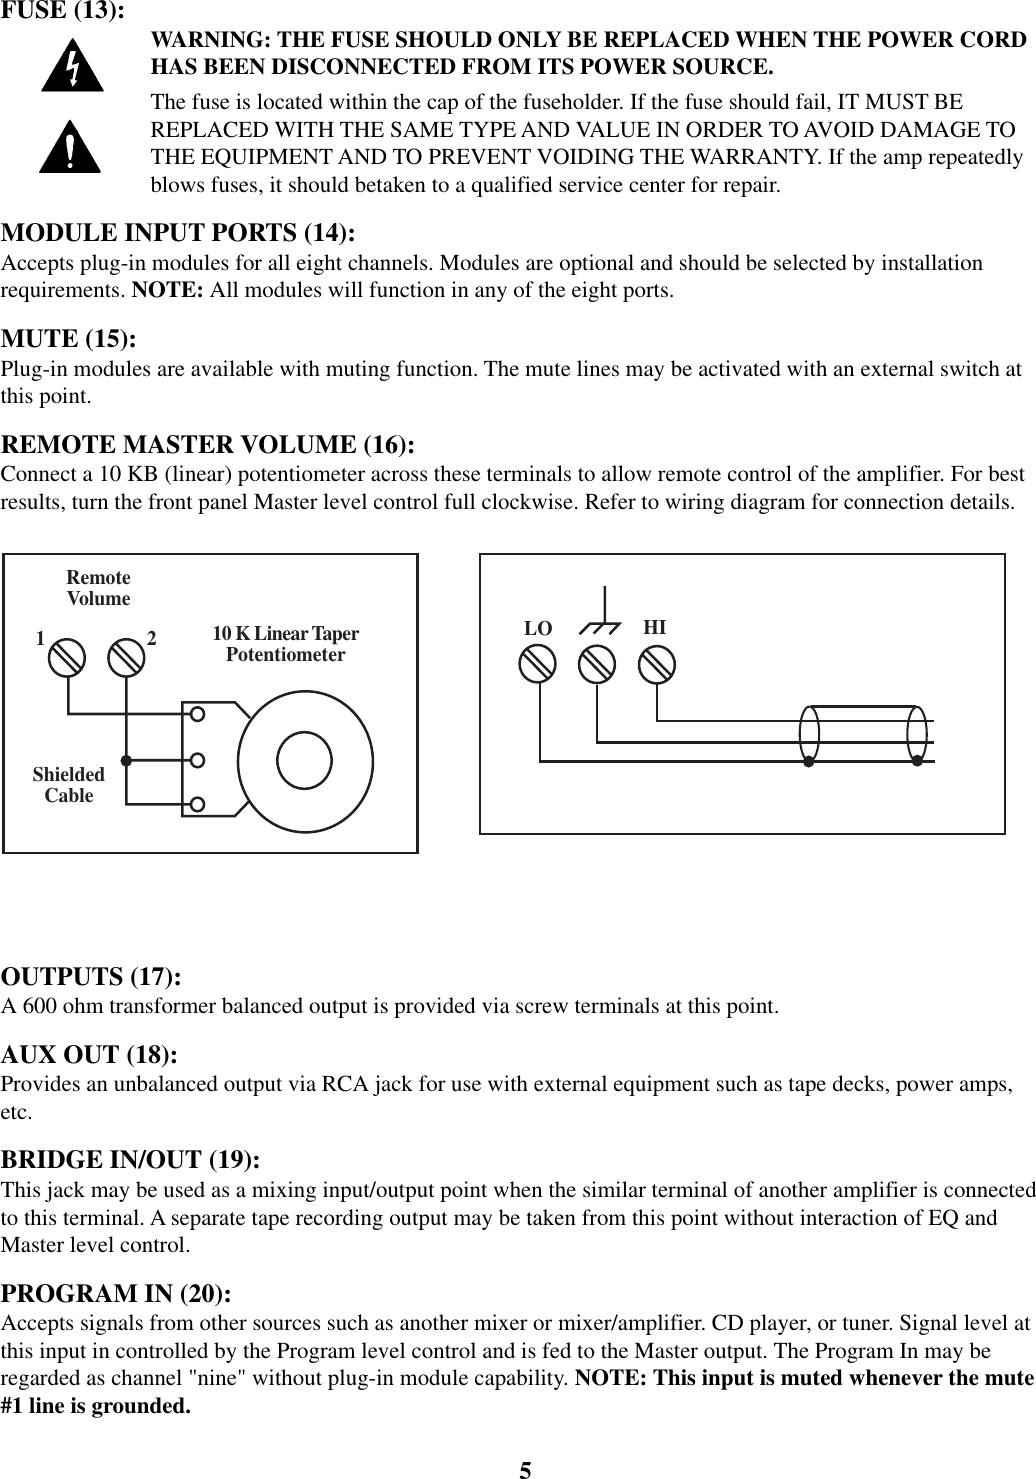 Peavey Mma 800t Users Manual Om Channel Master Wiring Diagram Page 5 Of 12